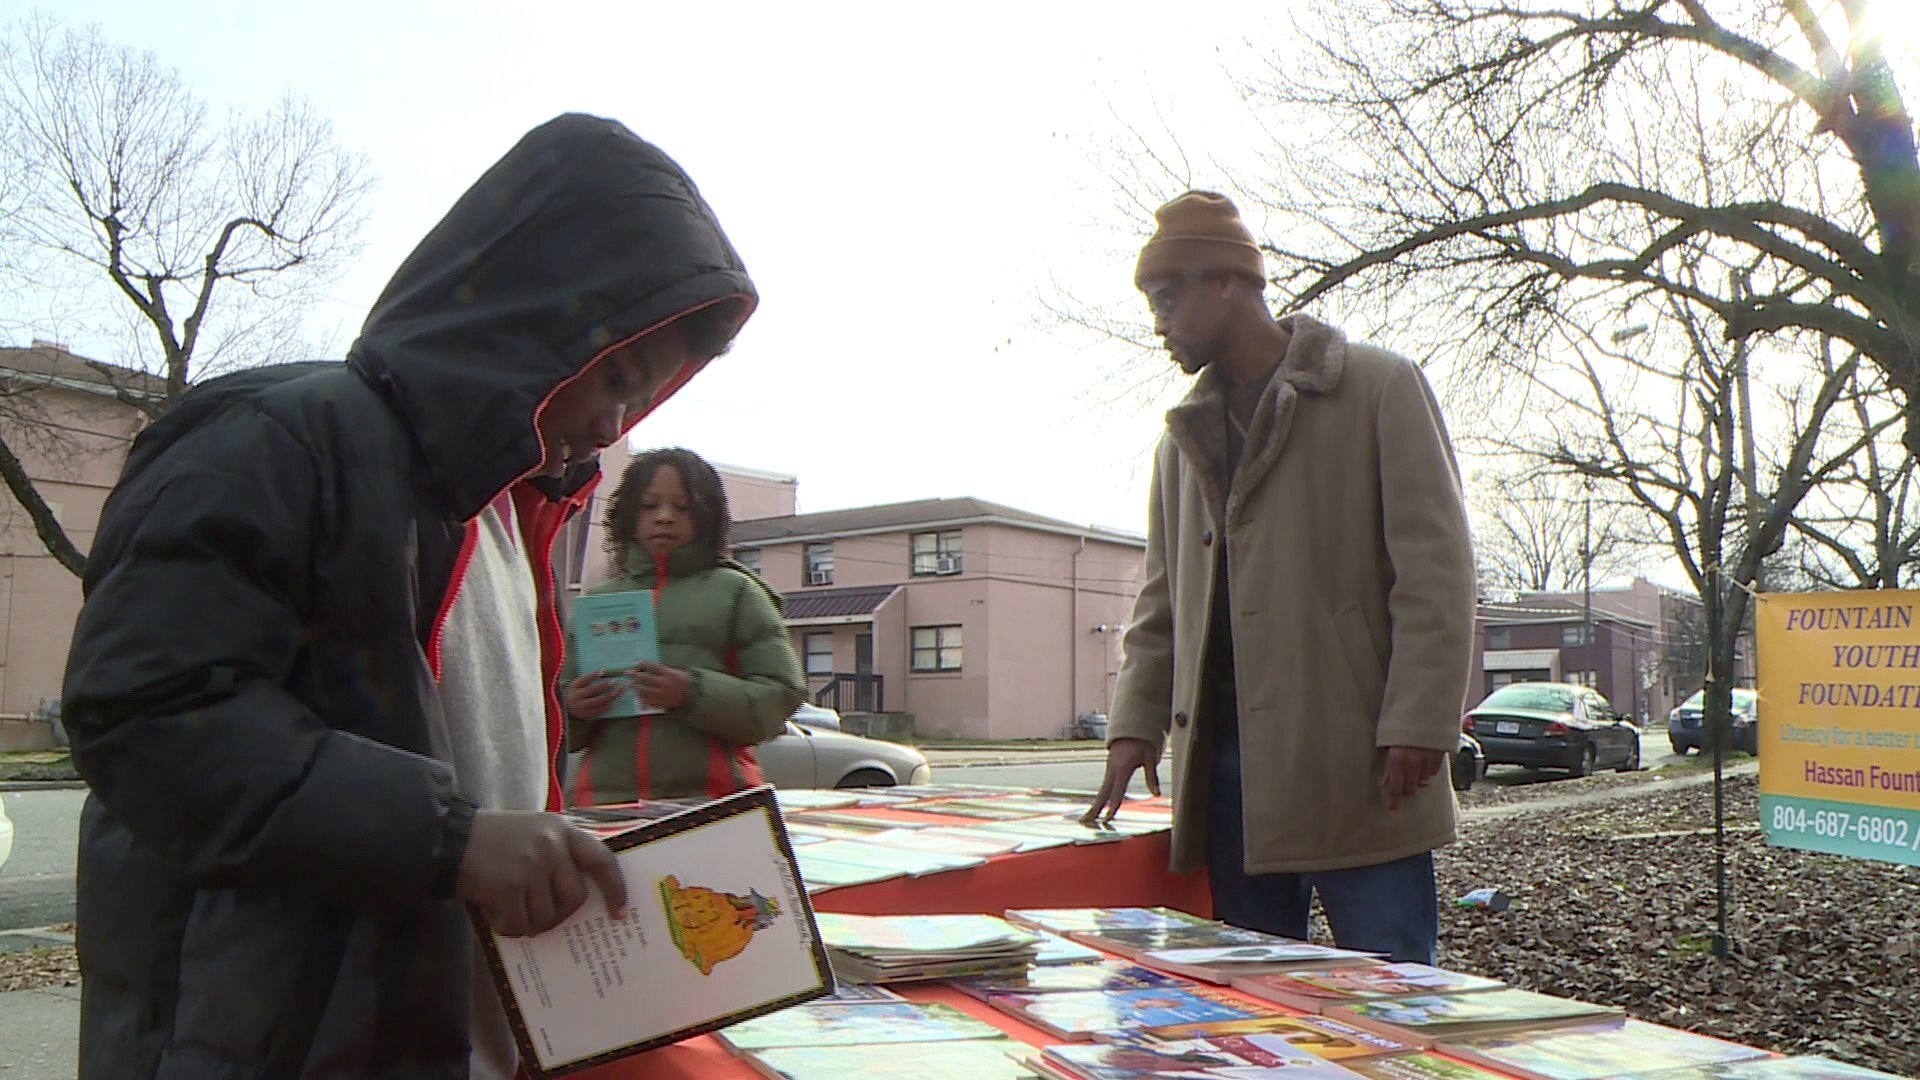 Photos: Why group is giving free books to kids in this Richmond neighborhood